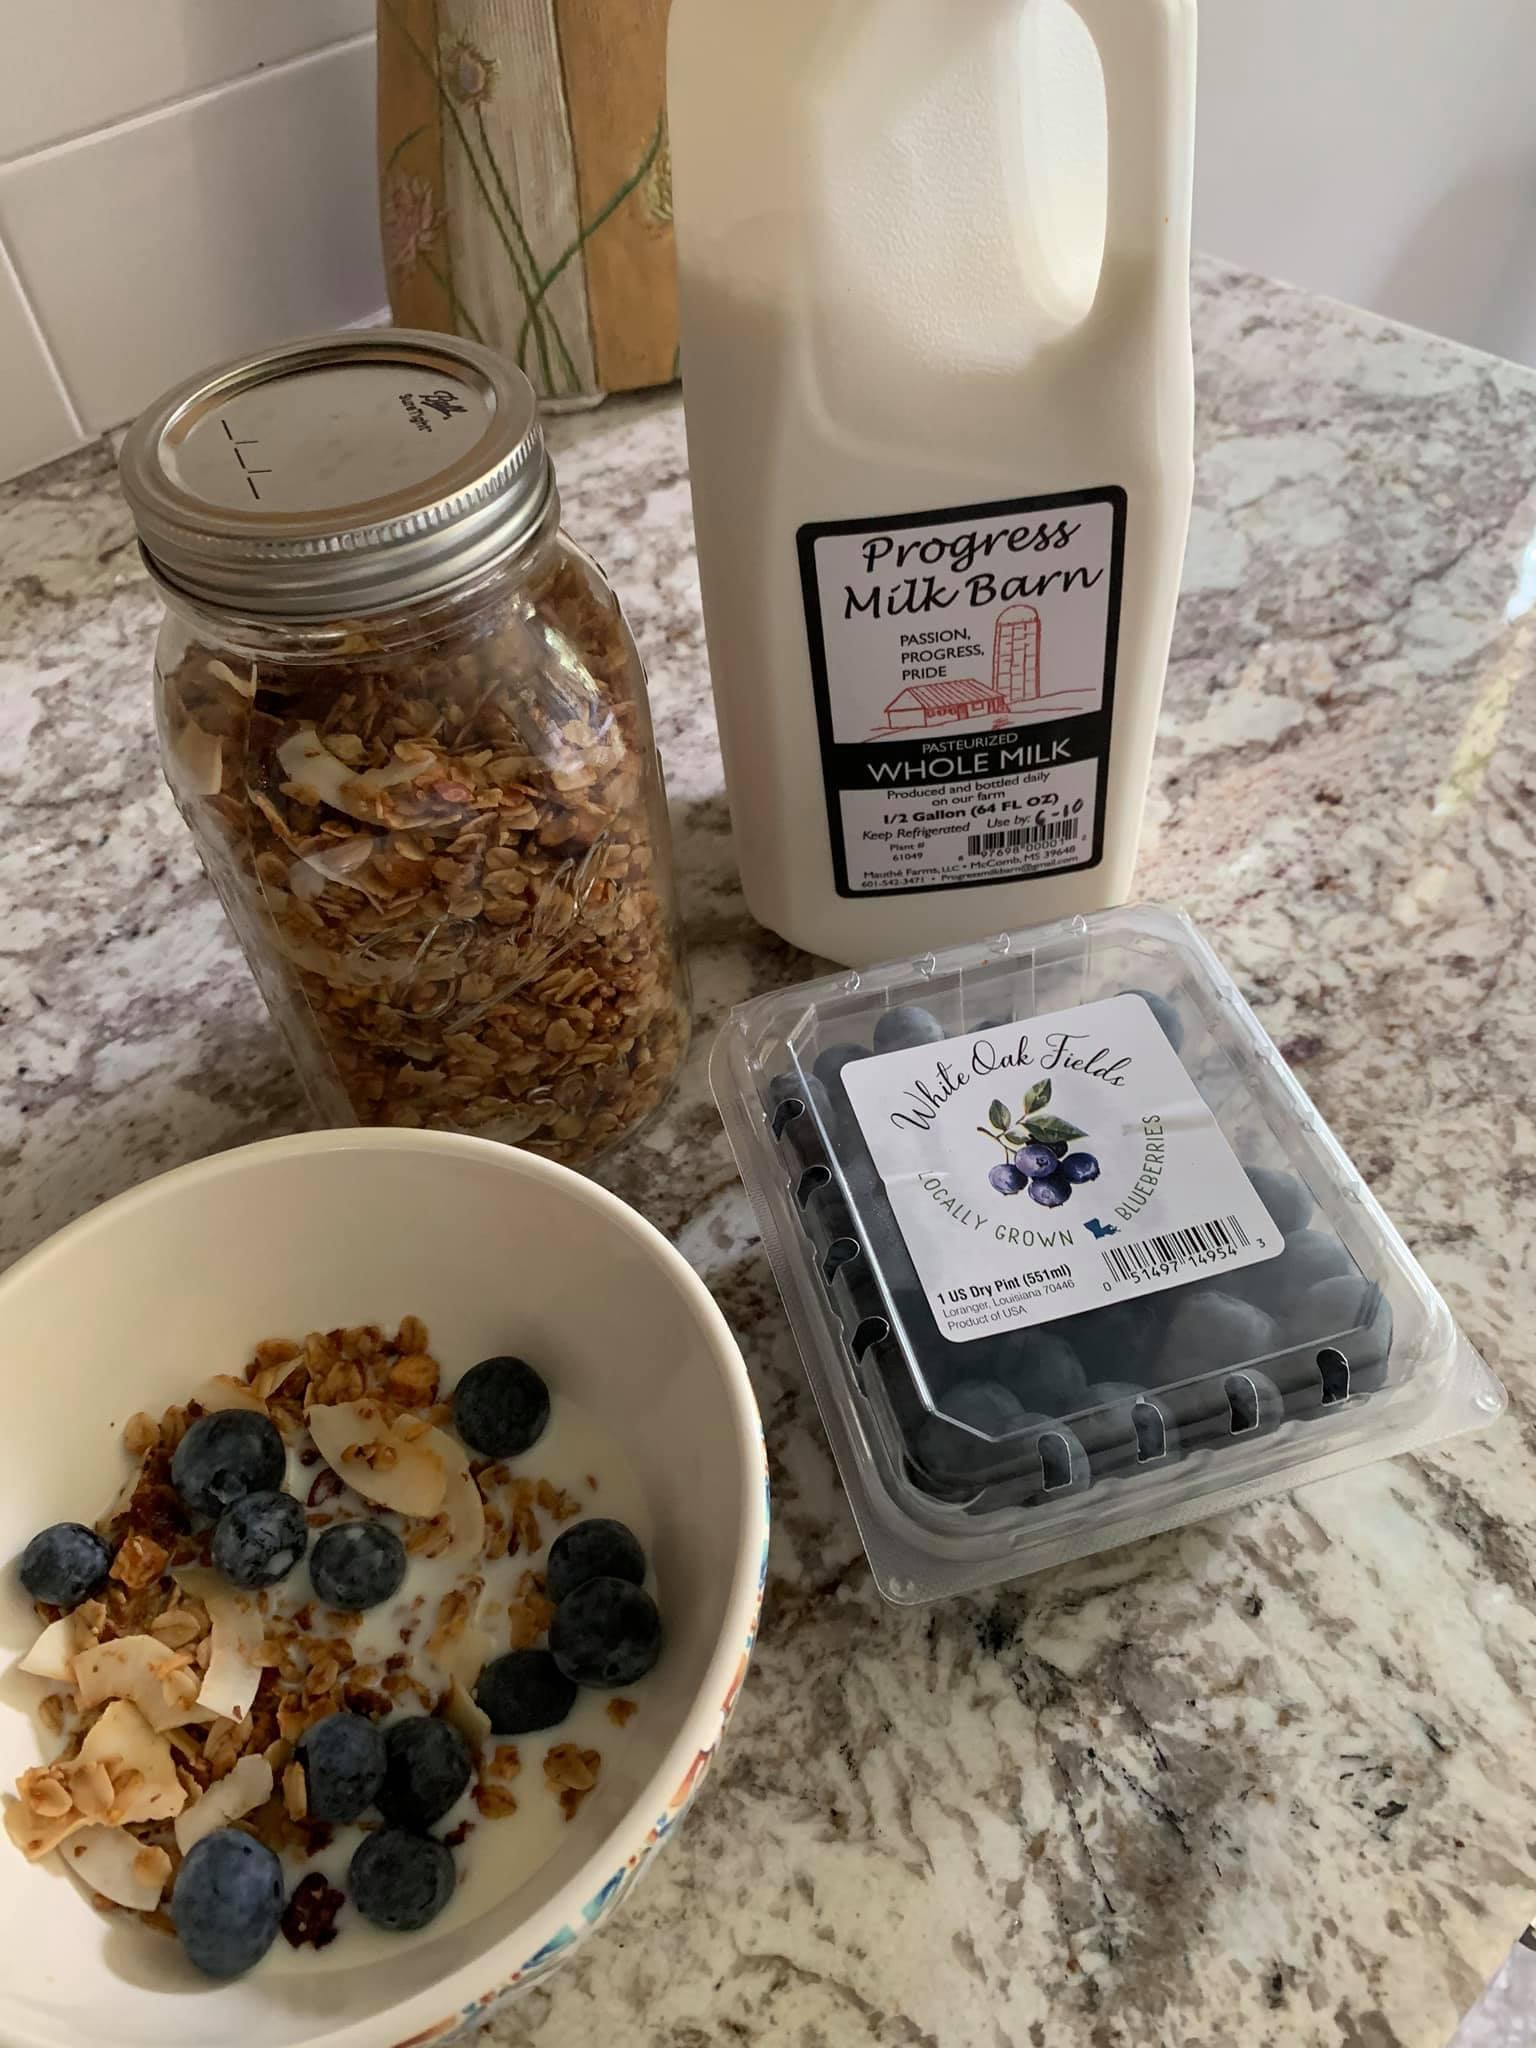 Homemade granola with blueberries and milk